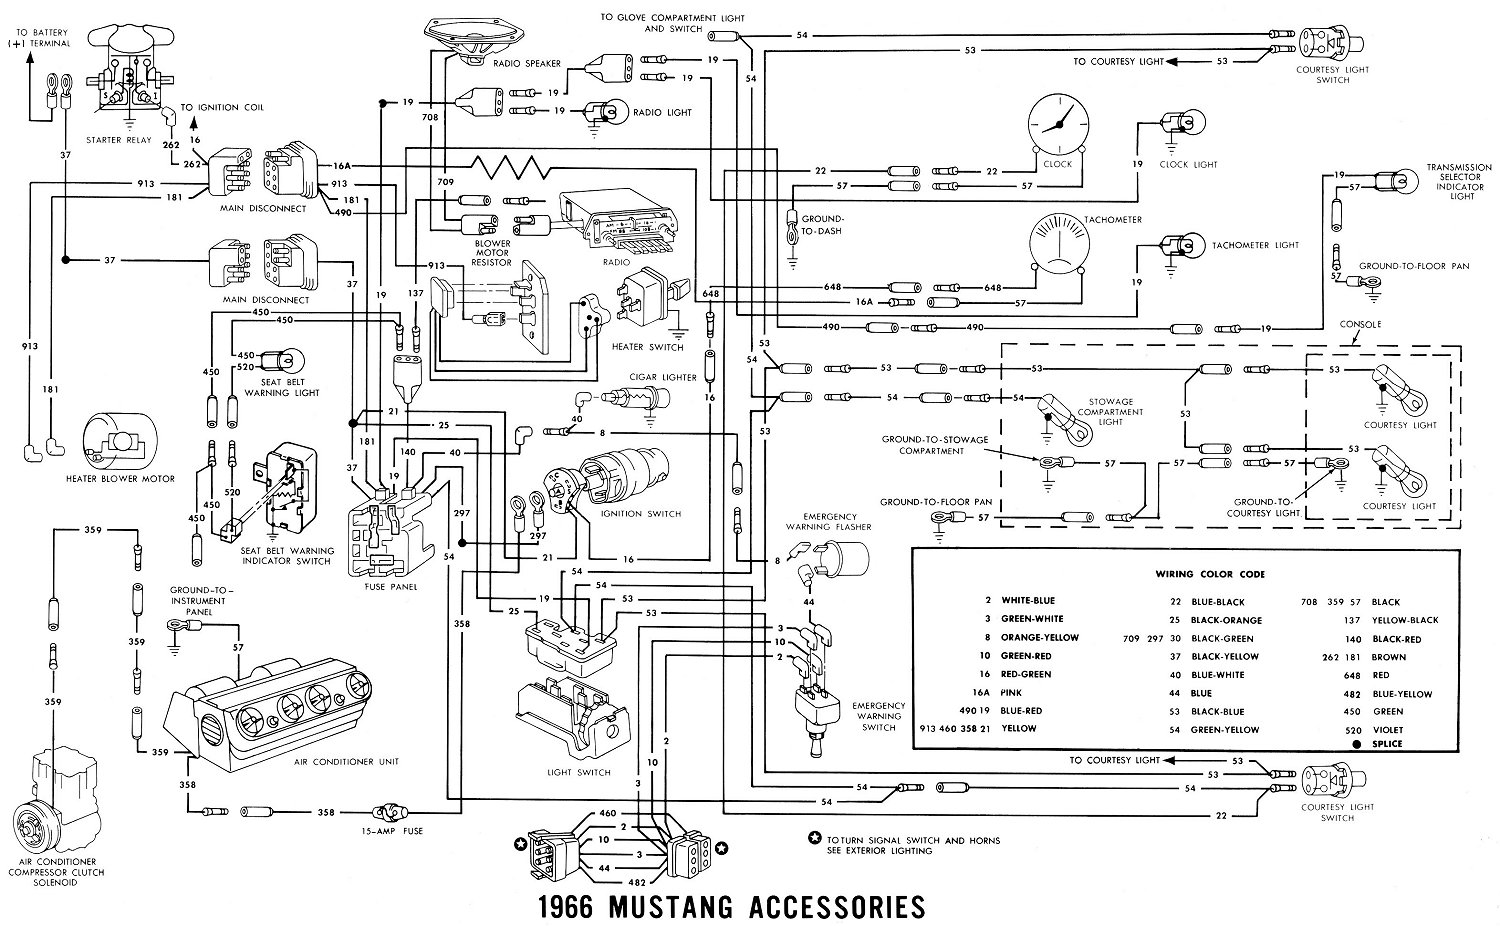 66acces1 1966 mustang wiring diagrams average joe restoration mustang wiring harness diagram at suagrazia.org